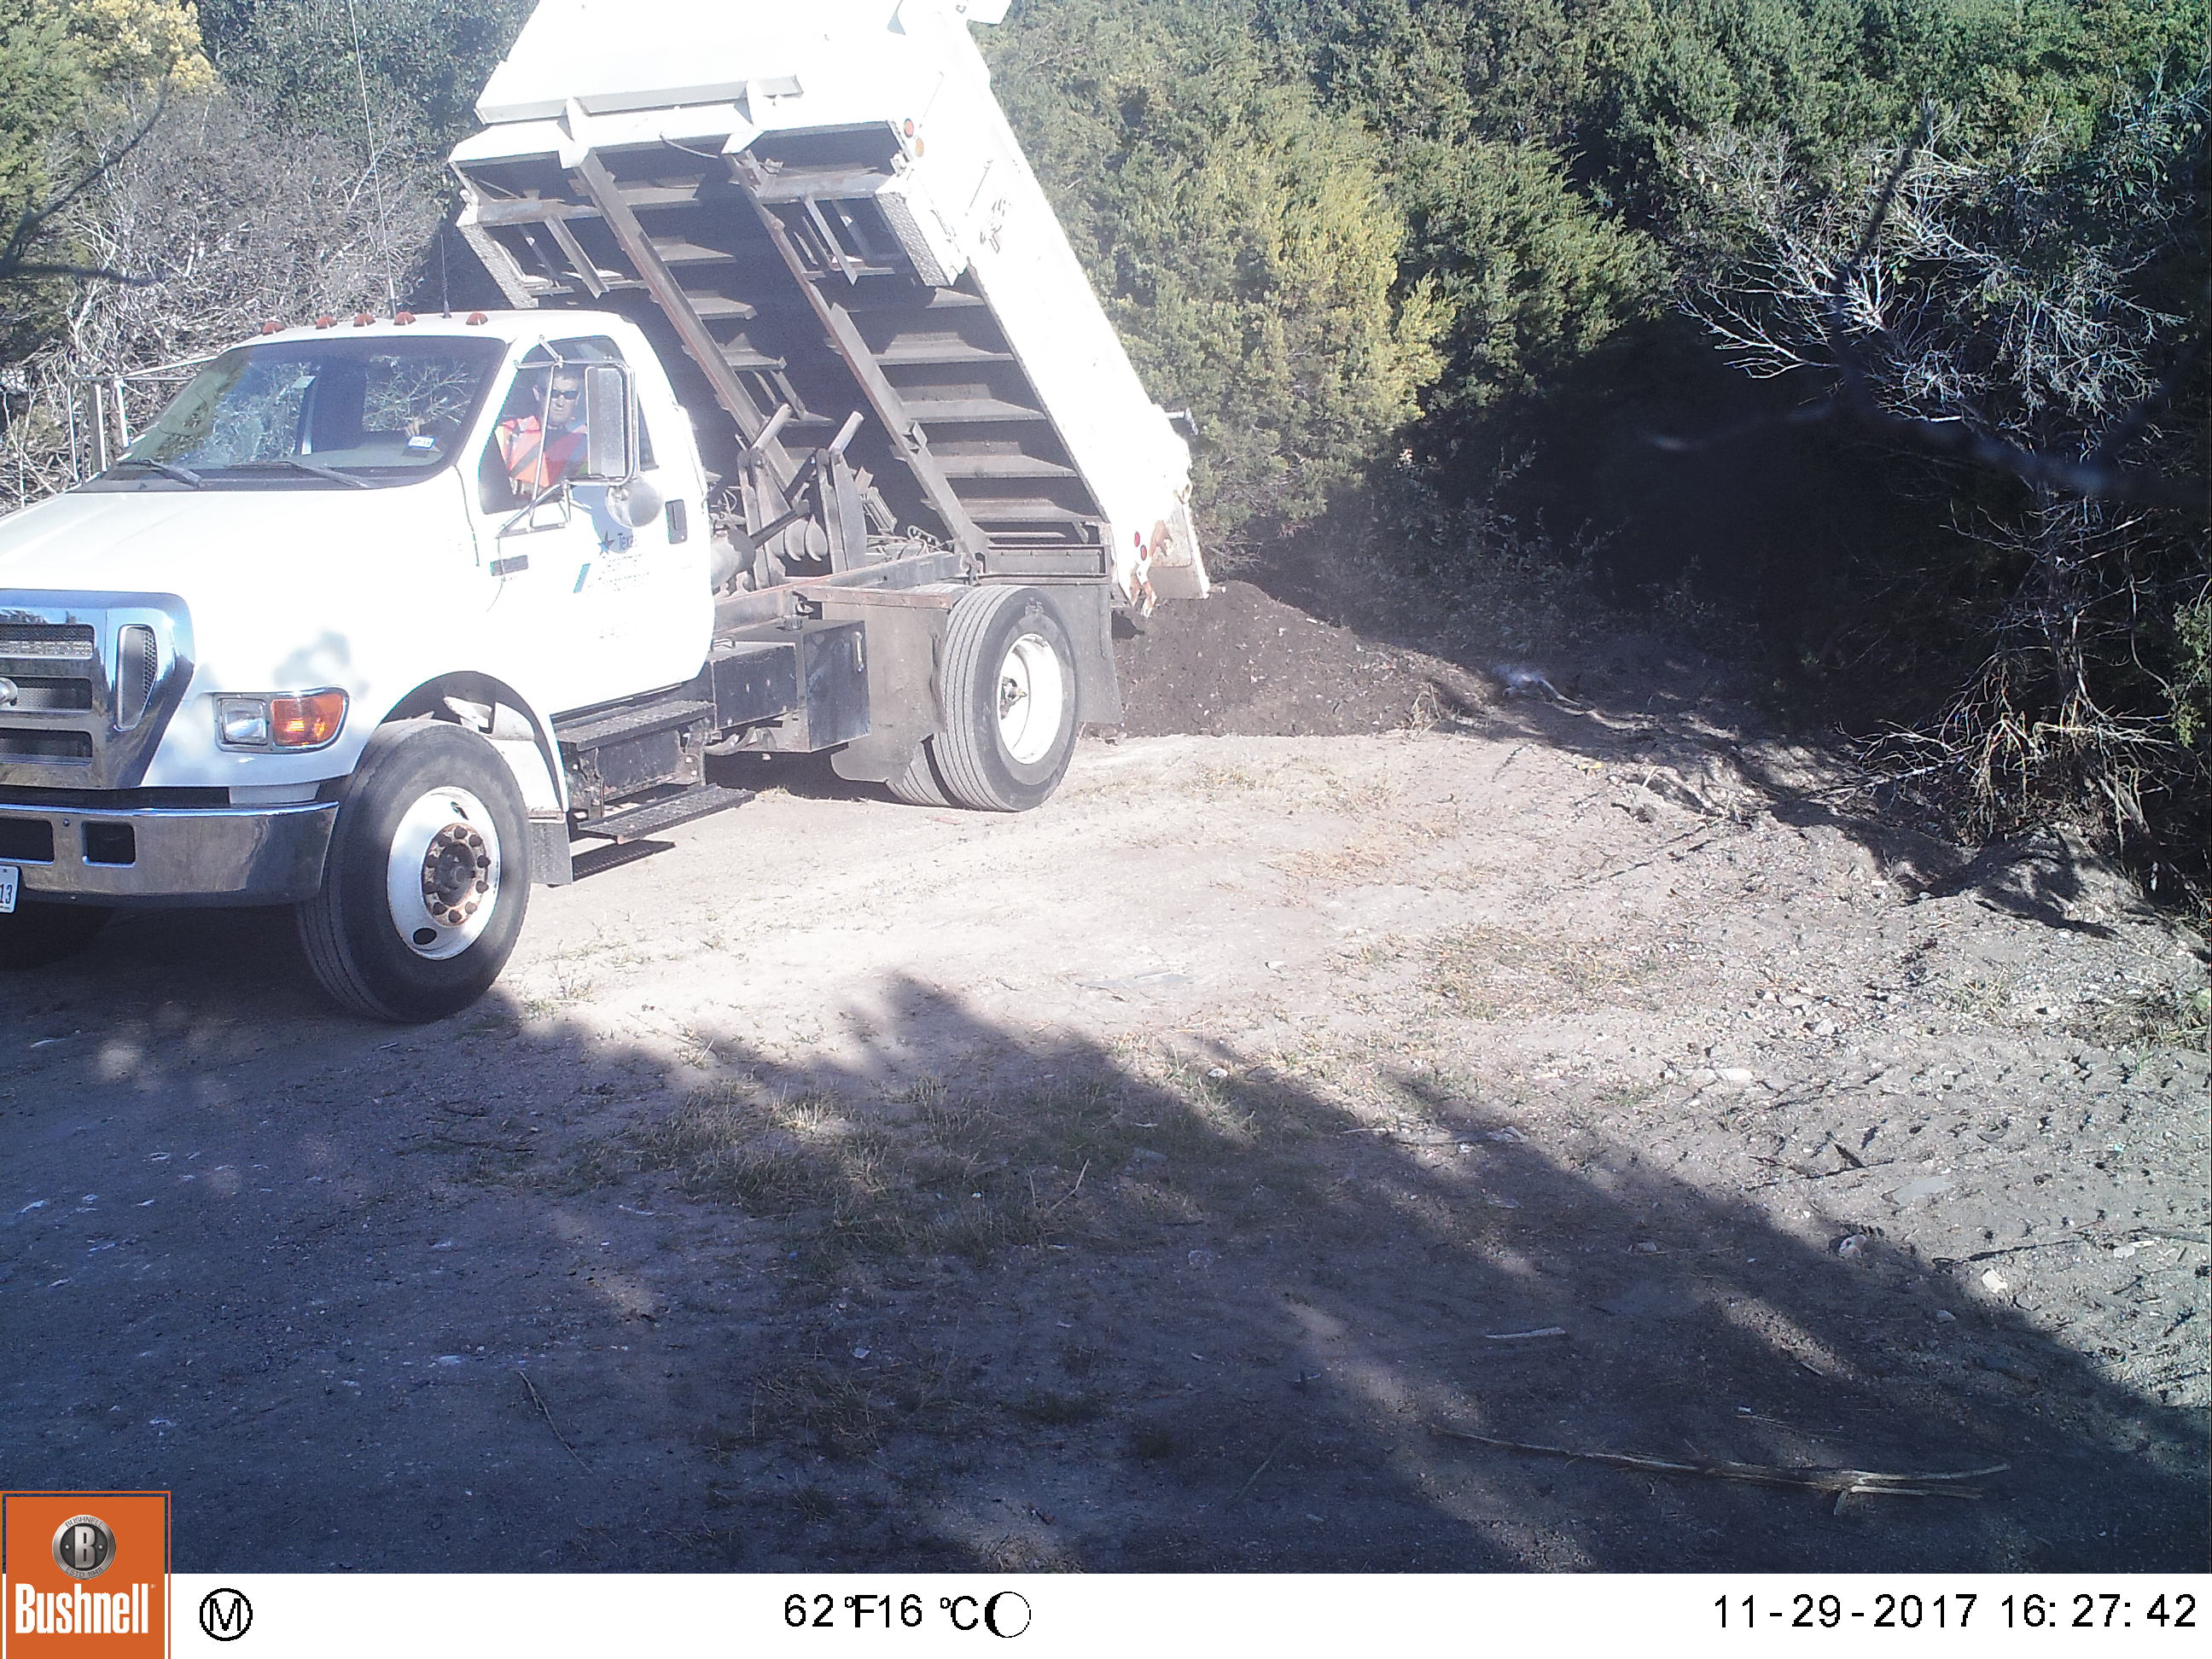 TxDOT truck  dumping a load of dirt and garbage over a dead deer and tire on Nov. 17, 2017. KXAN later checked the pile of debris and found luggage, plastics and random trash in it. (KXAN Photo)